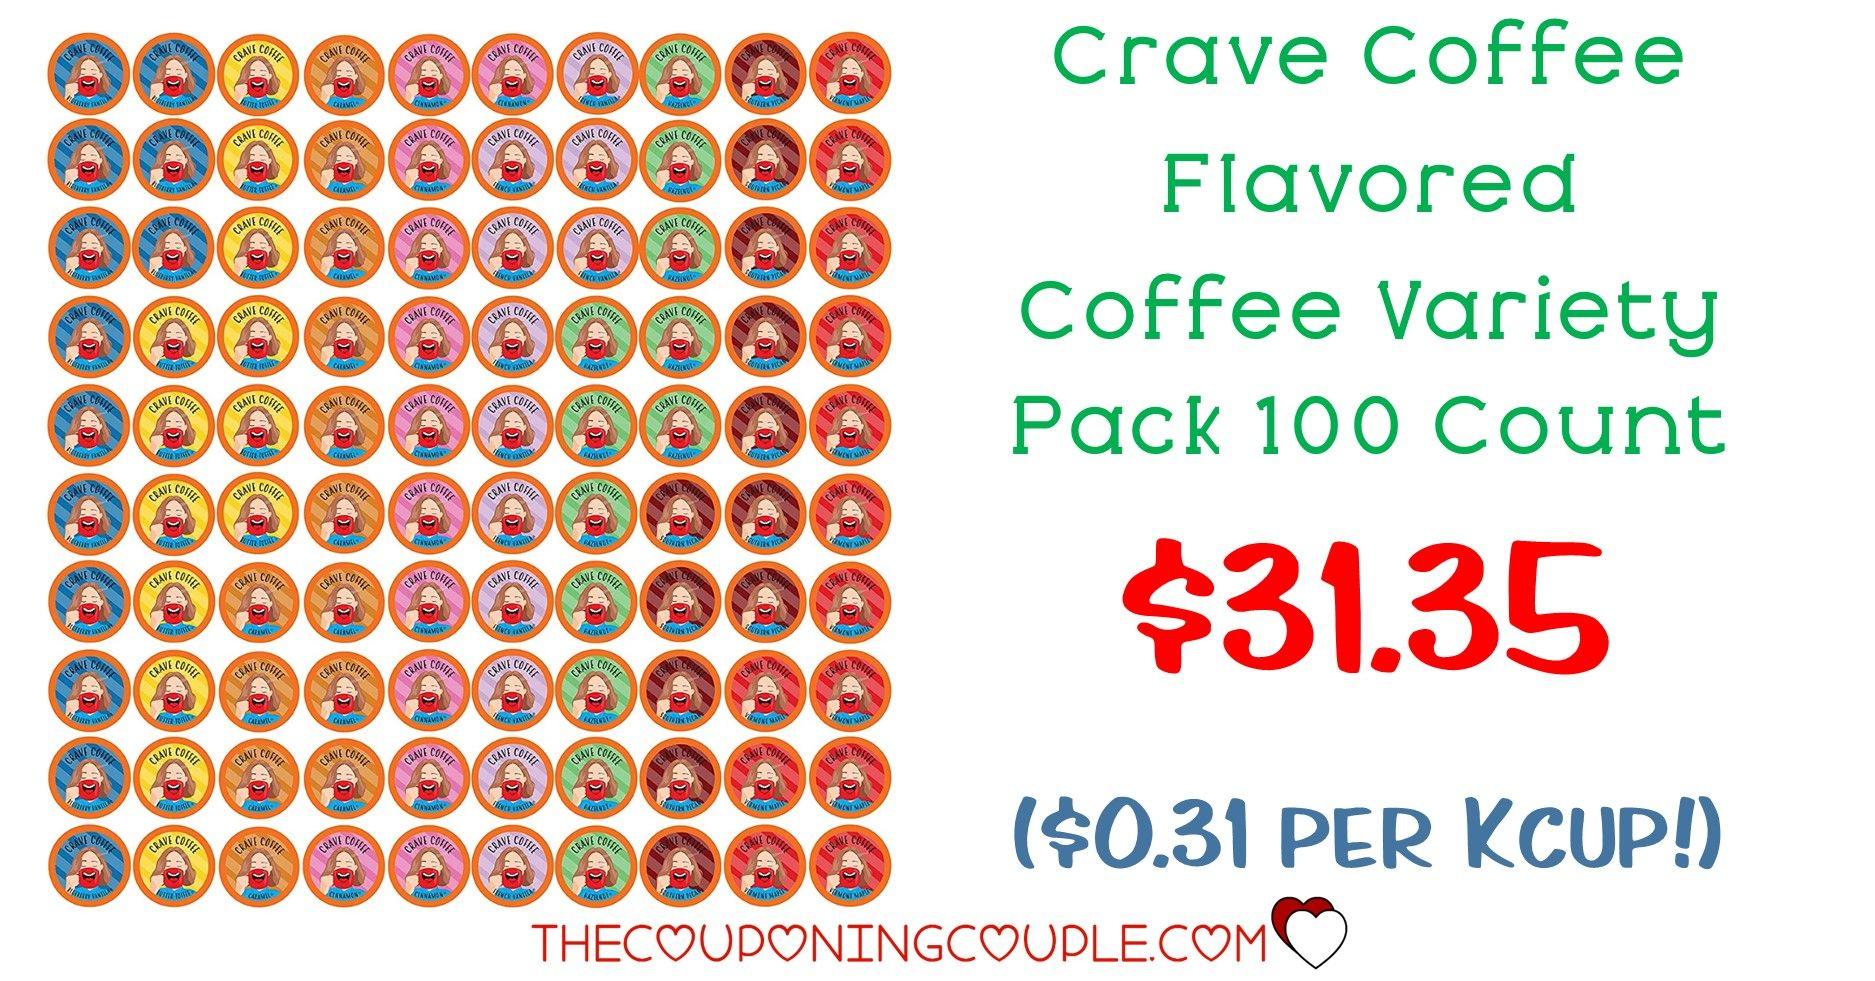 Crave coffee flavored coffee variety pack 100ct 3135 0